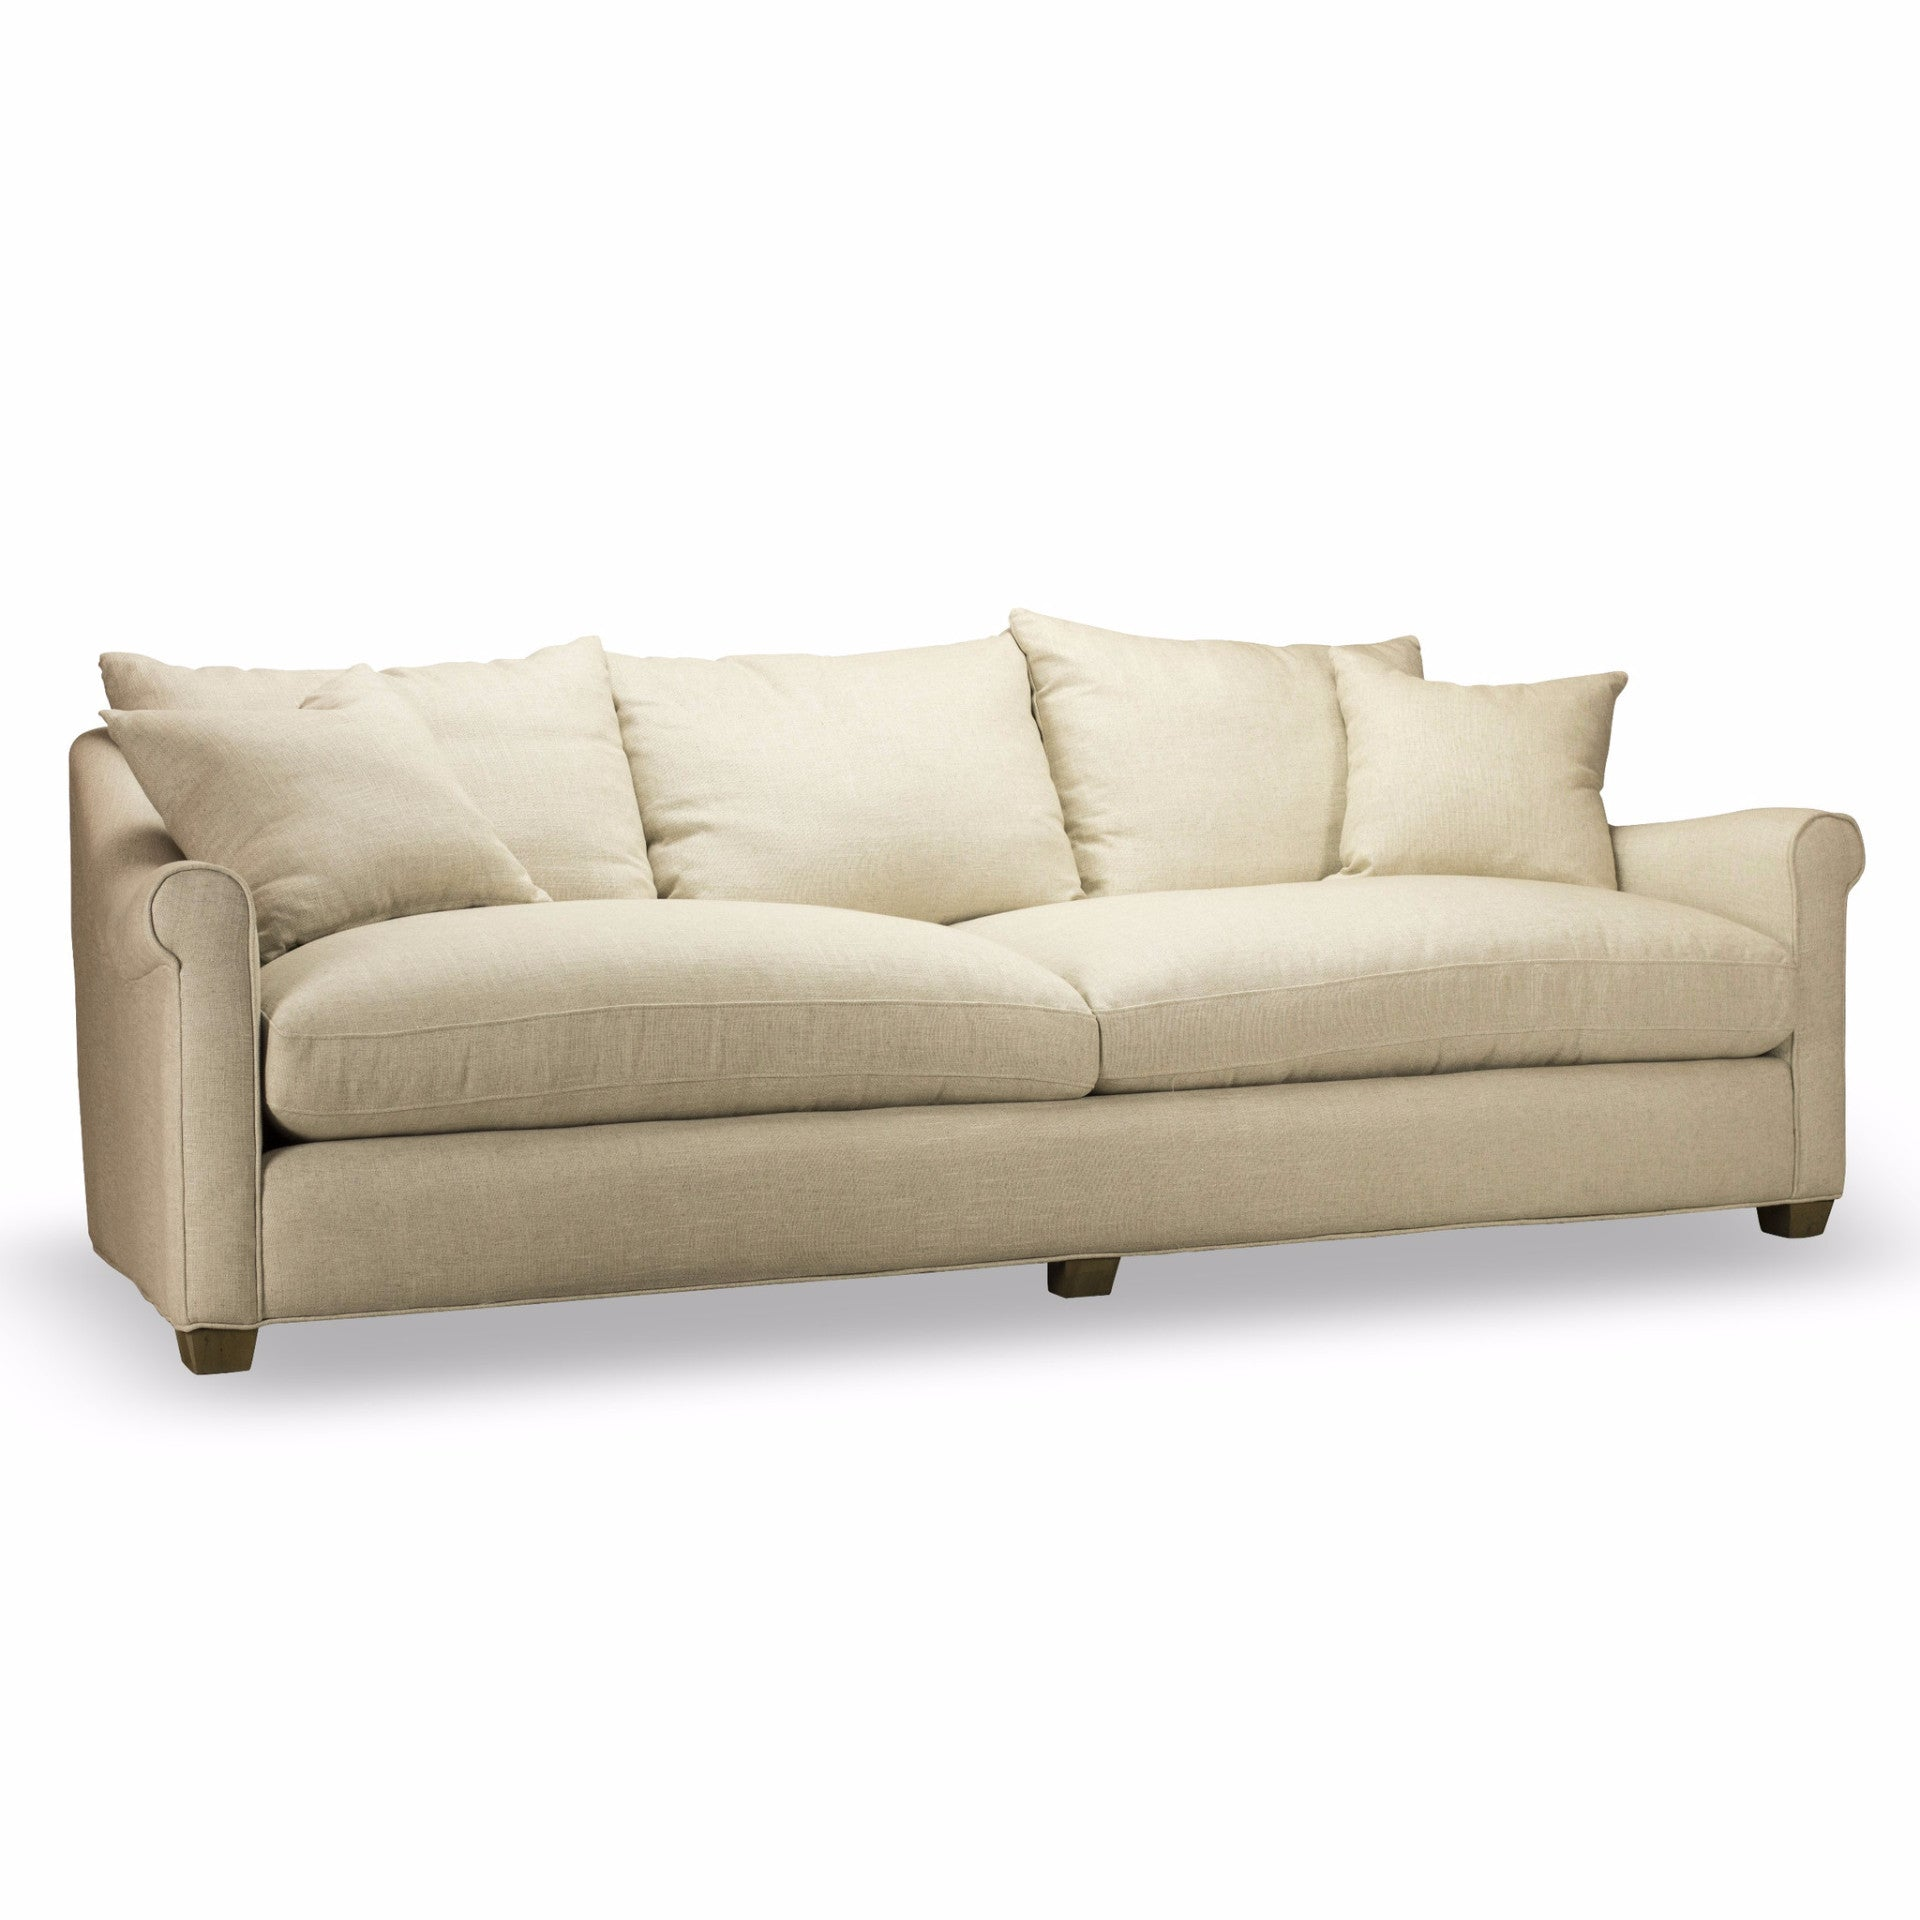 "Celeste 104"" sofa - Natural Ecru"